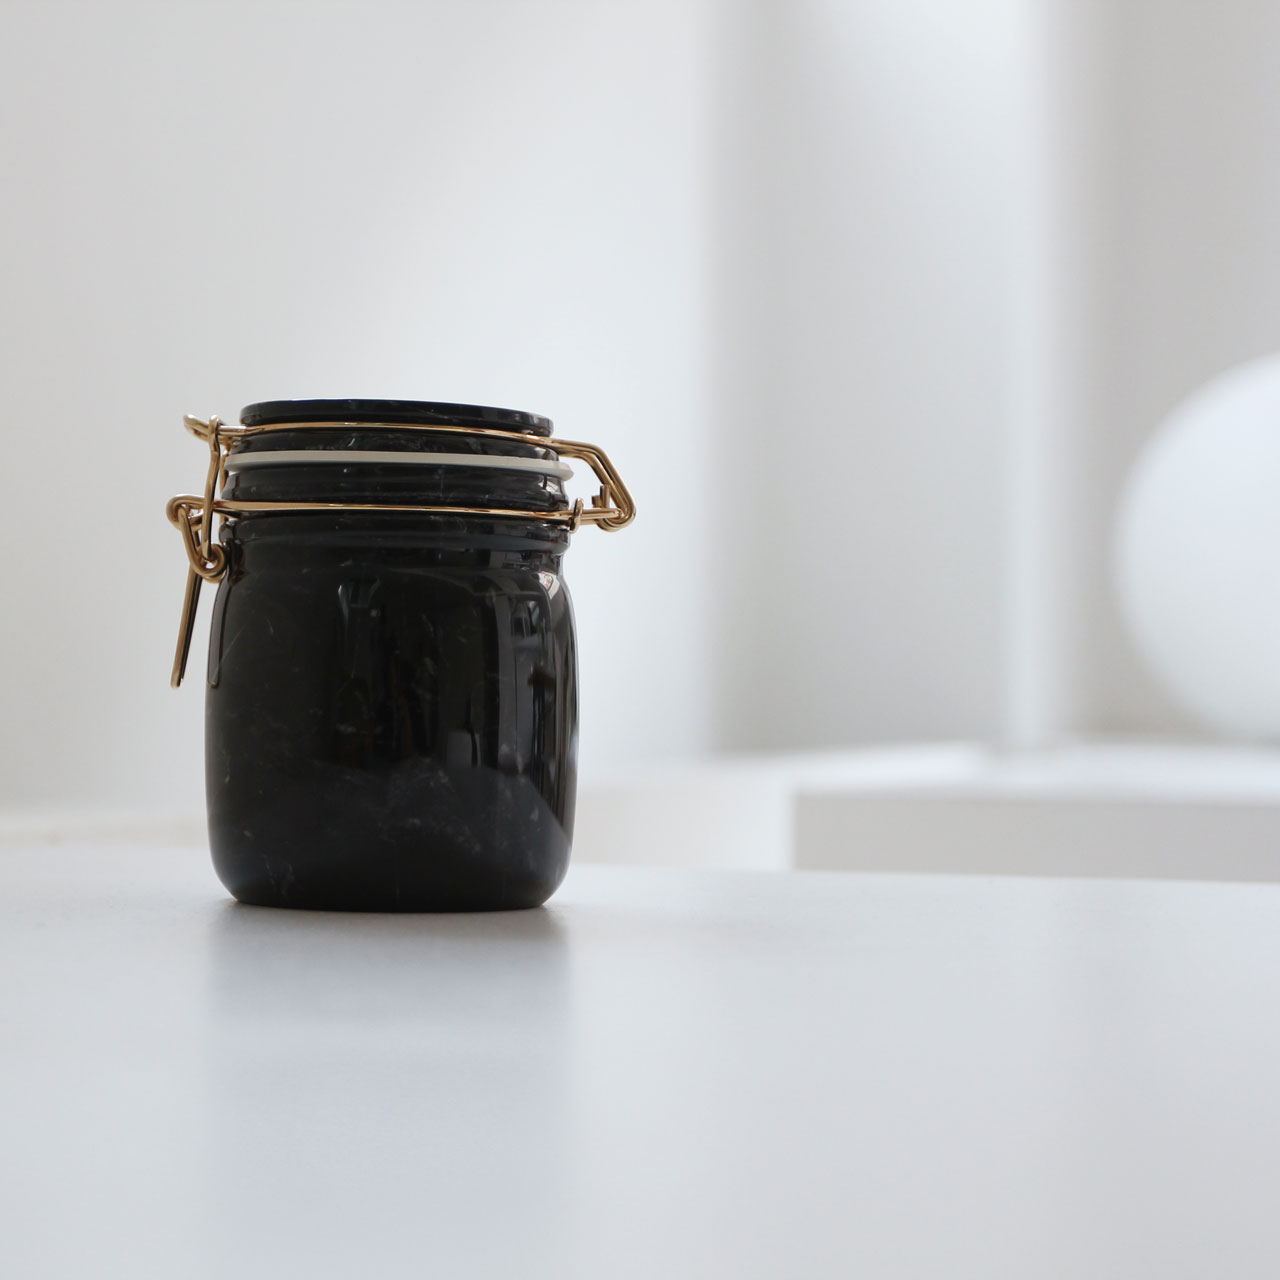 Mr. Marble jar by Lorenza Bozzoli for Spazio Pontaccio / Polished black Marquinia marble / Brass latch / 10 cm D x 12 cm H / Edition of 20. Photo by Costas Voyatzis.